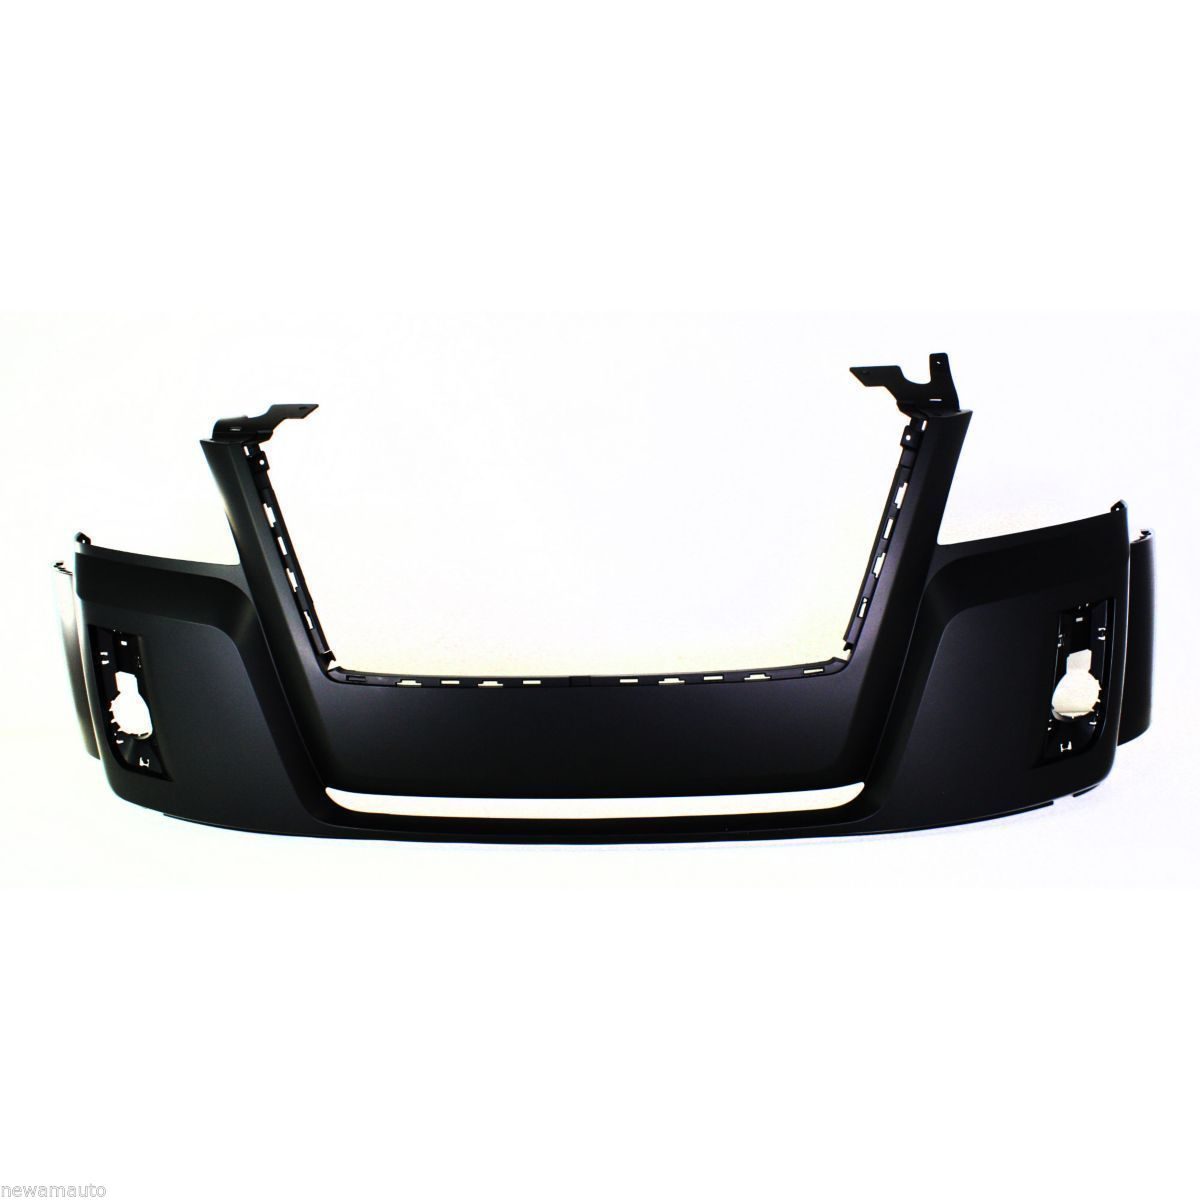 2010-2015 GMC TERRAIN Front Bumper Cover Painted to Match